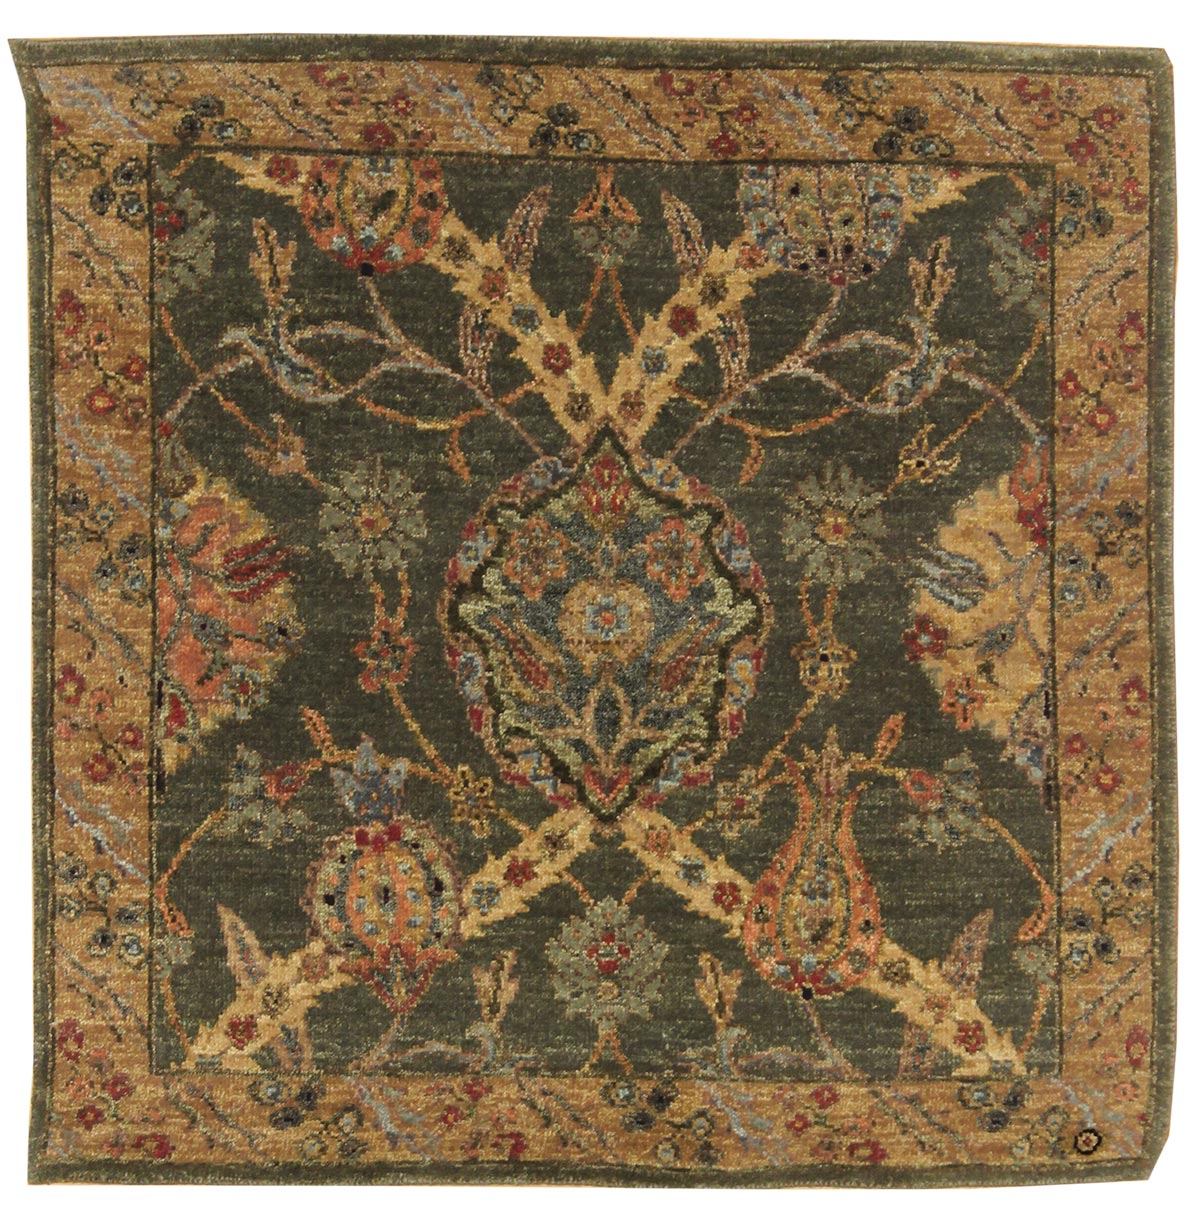 Arts & Crafts Handwoven Traditional Rug